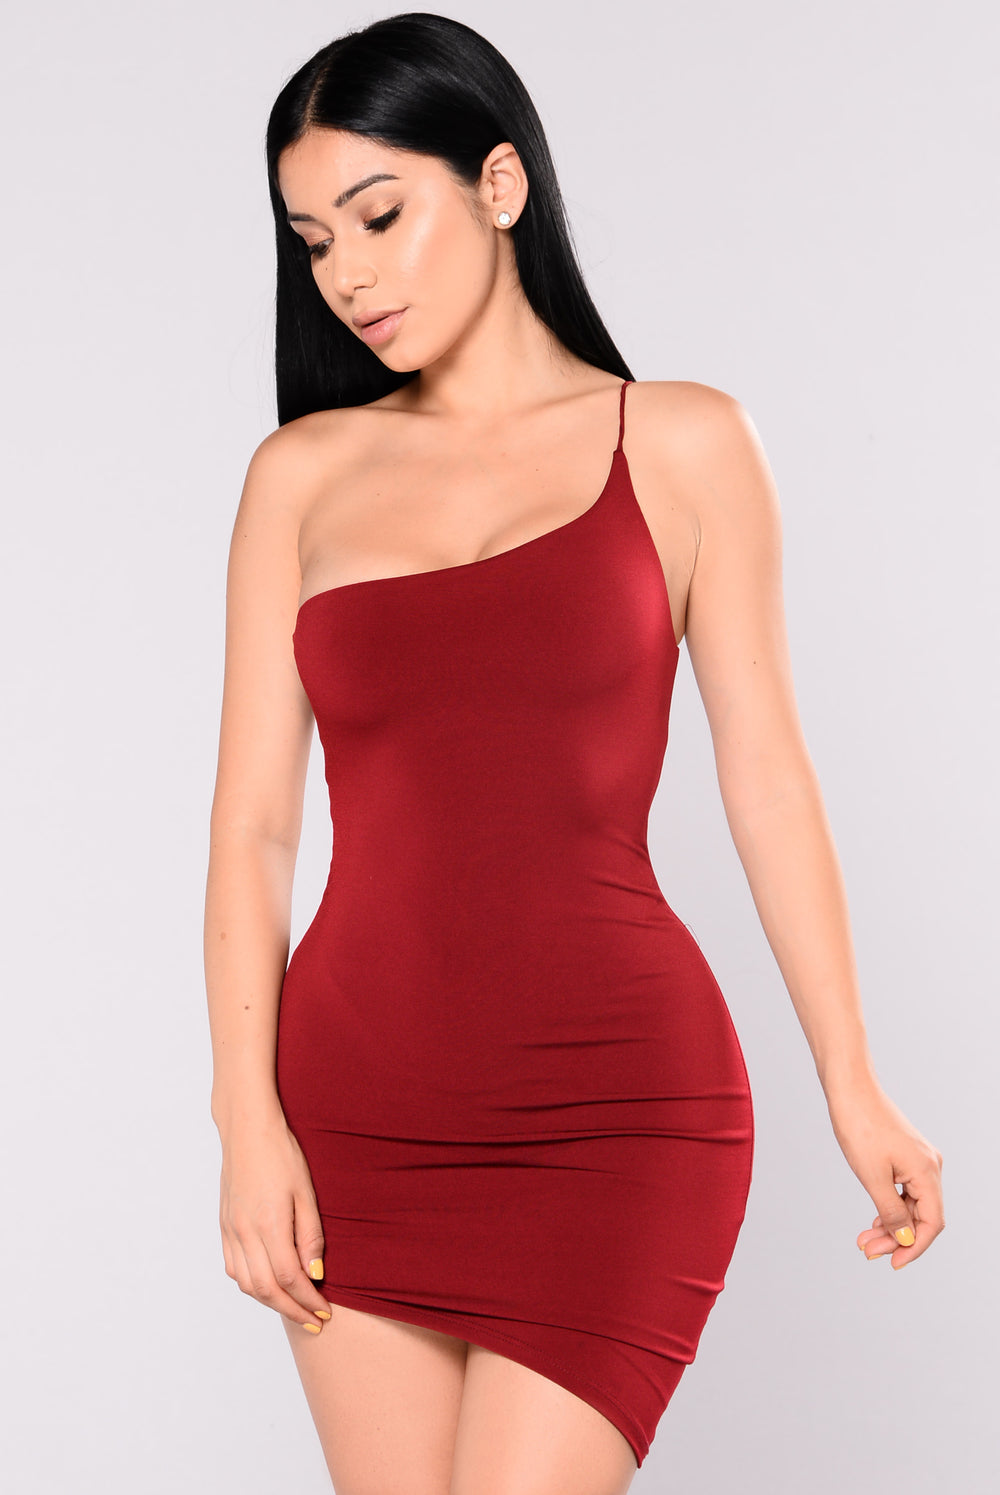 What's Your Sign Asymmetrical Dress - Burgundy